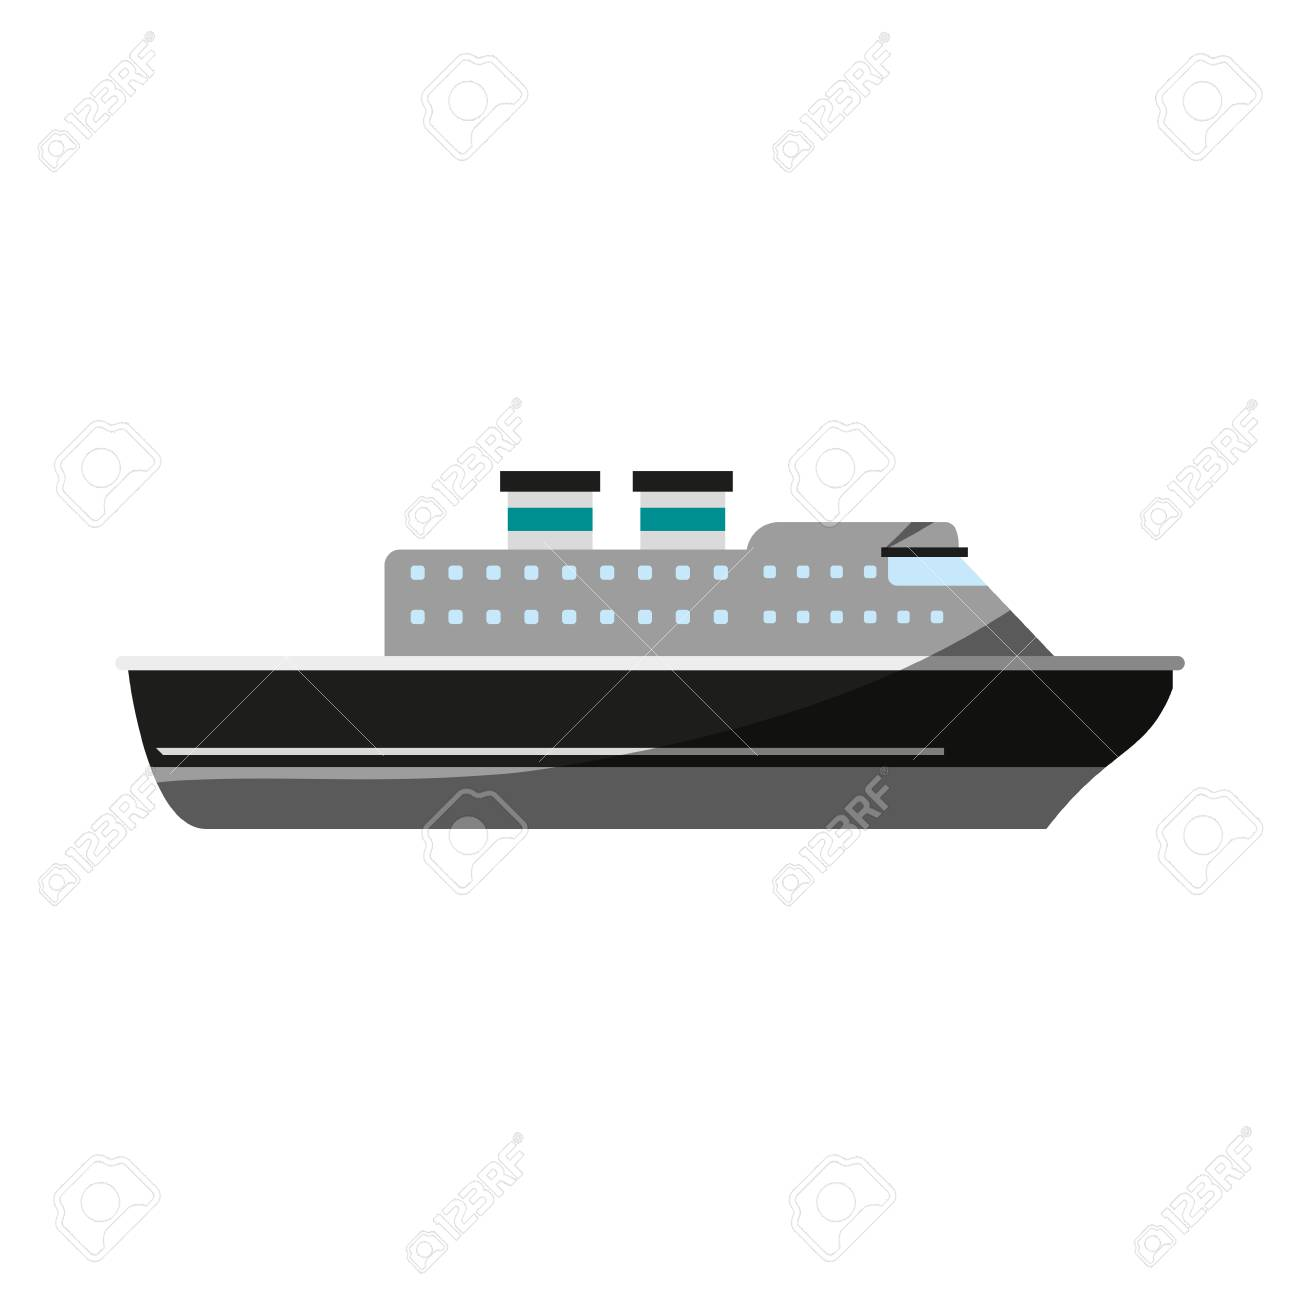 cruise ship icon image vector illustration design